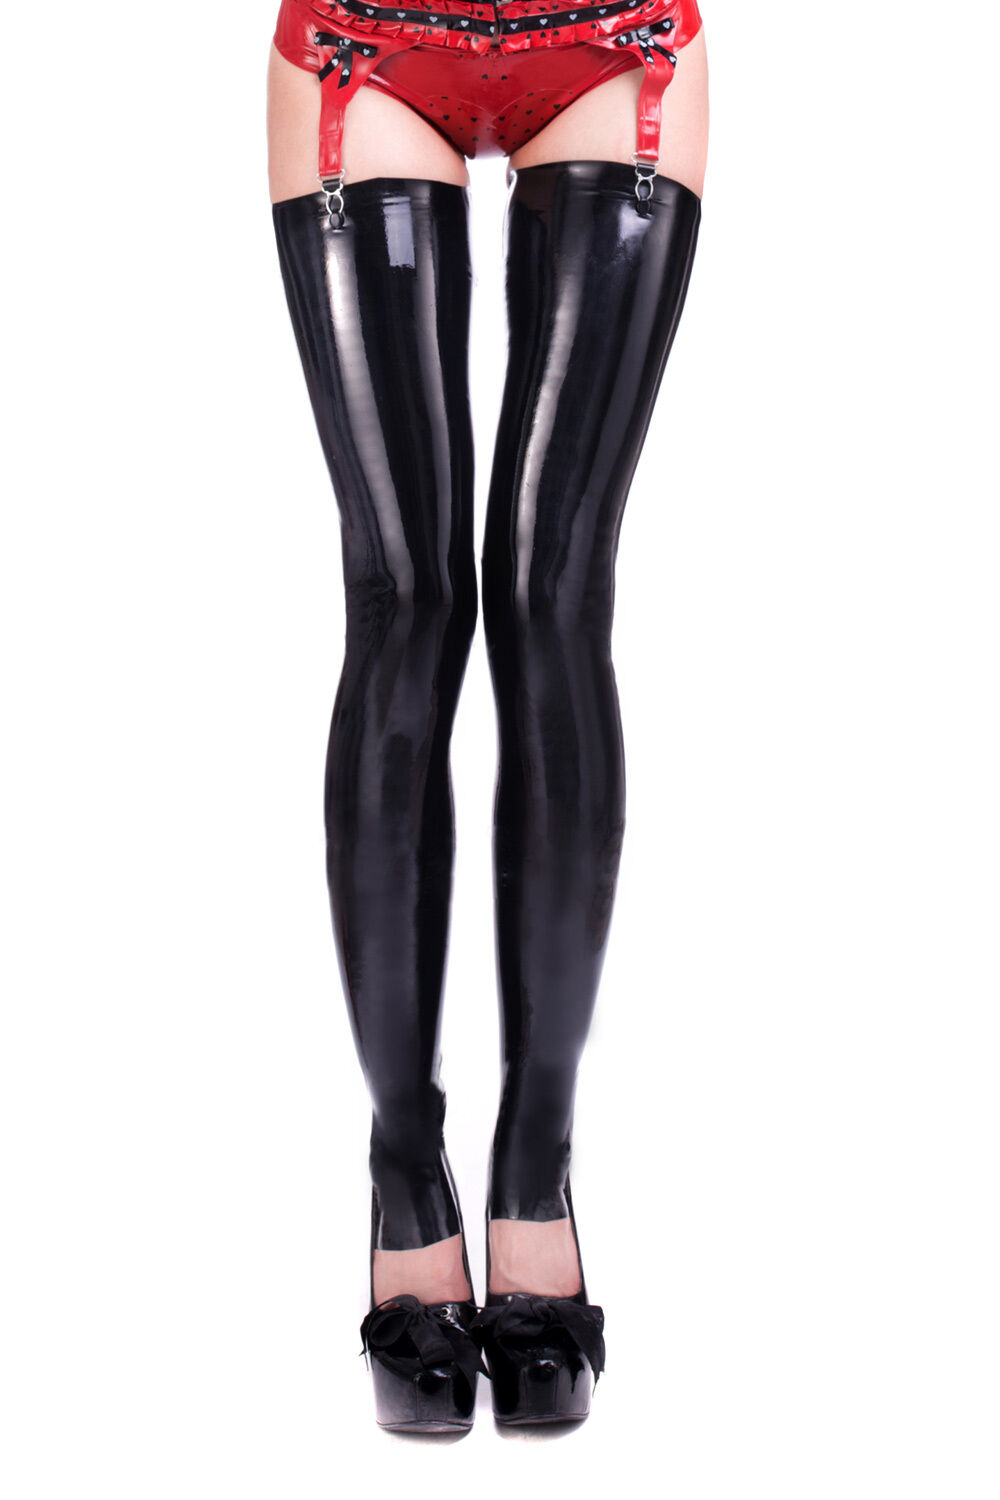 R1699 Footless Latex Unisexe Bas Tailoruge secondes   -